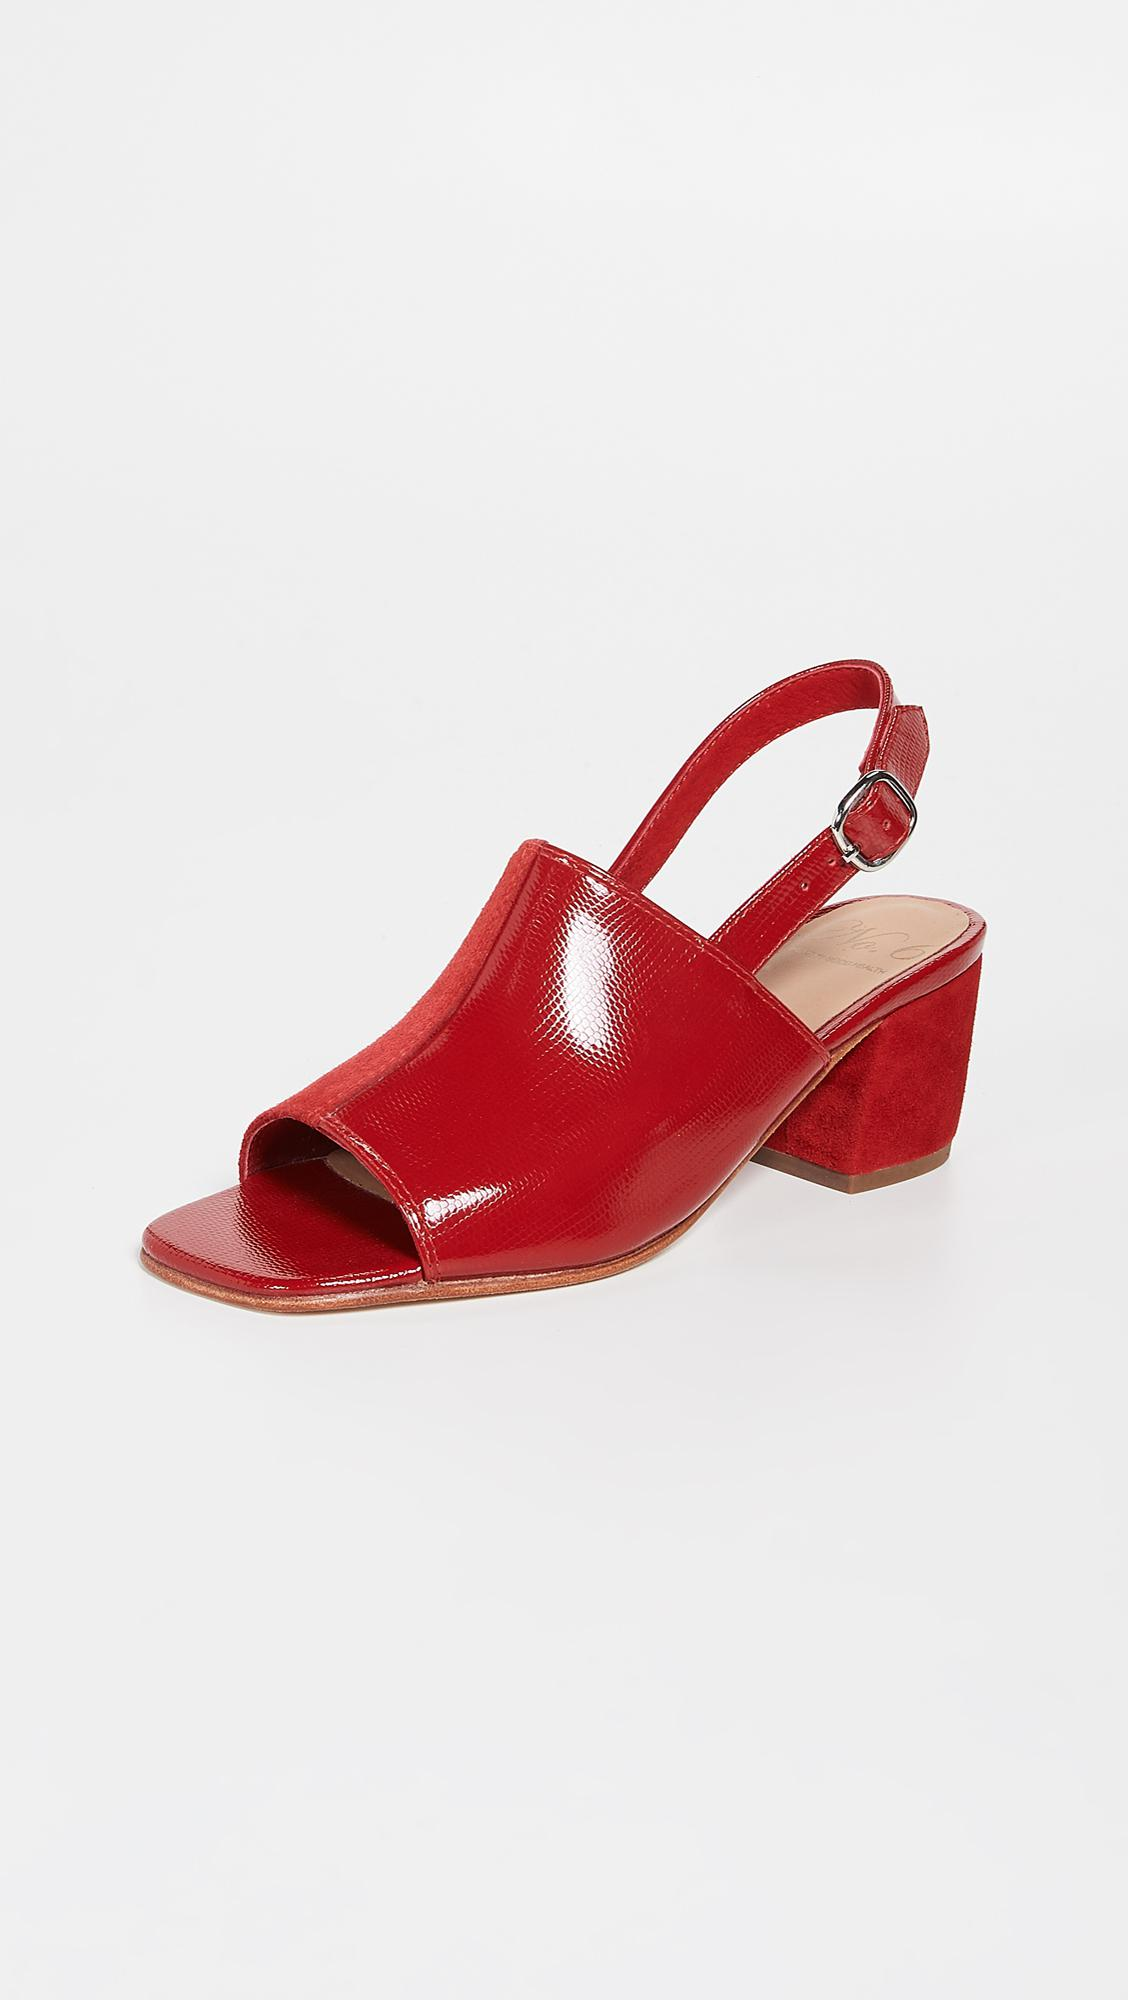 e434cd1bd4da98 Lyst - No. 6 Leah Sandals in Red